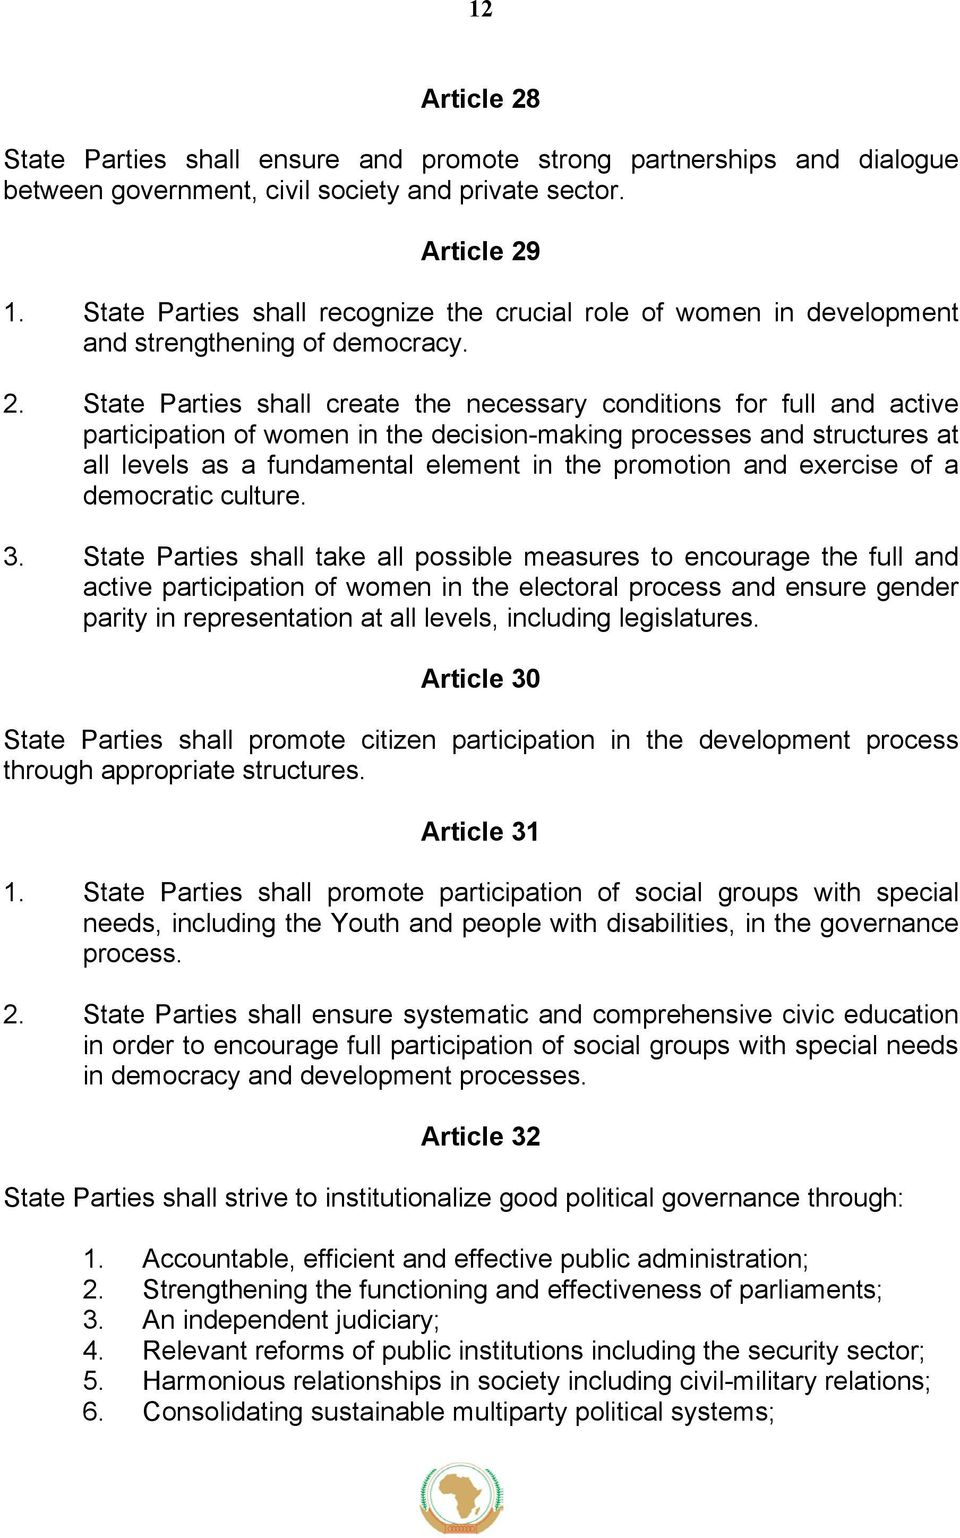 State Parties shall create the necessary conditions for full and active participation of women in the decision-making processes and structures at all levels as a fundamental element in the promotion